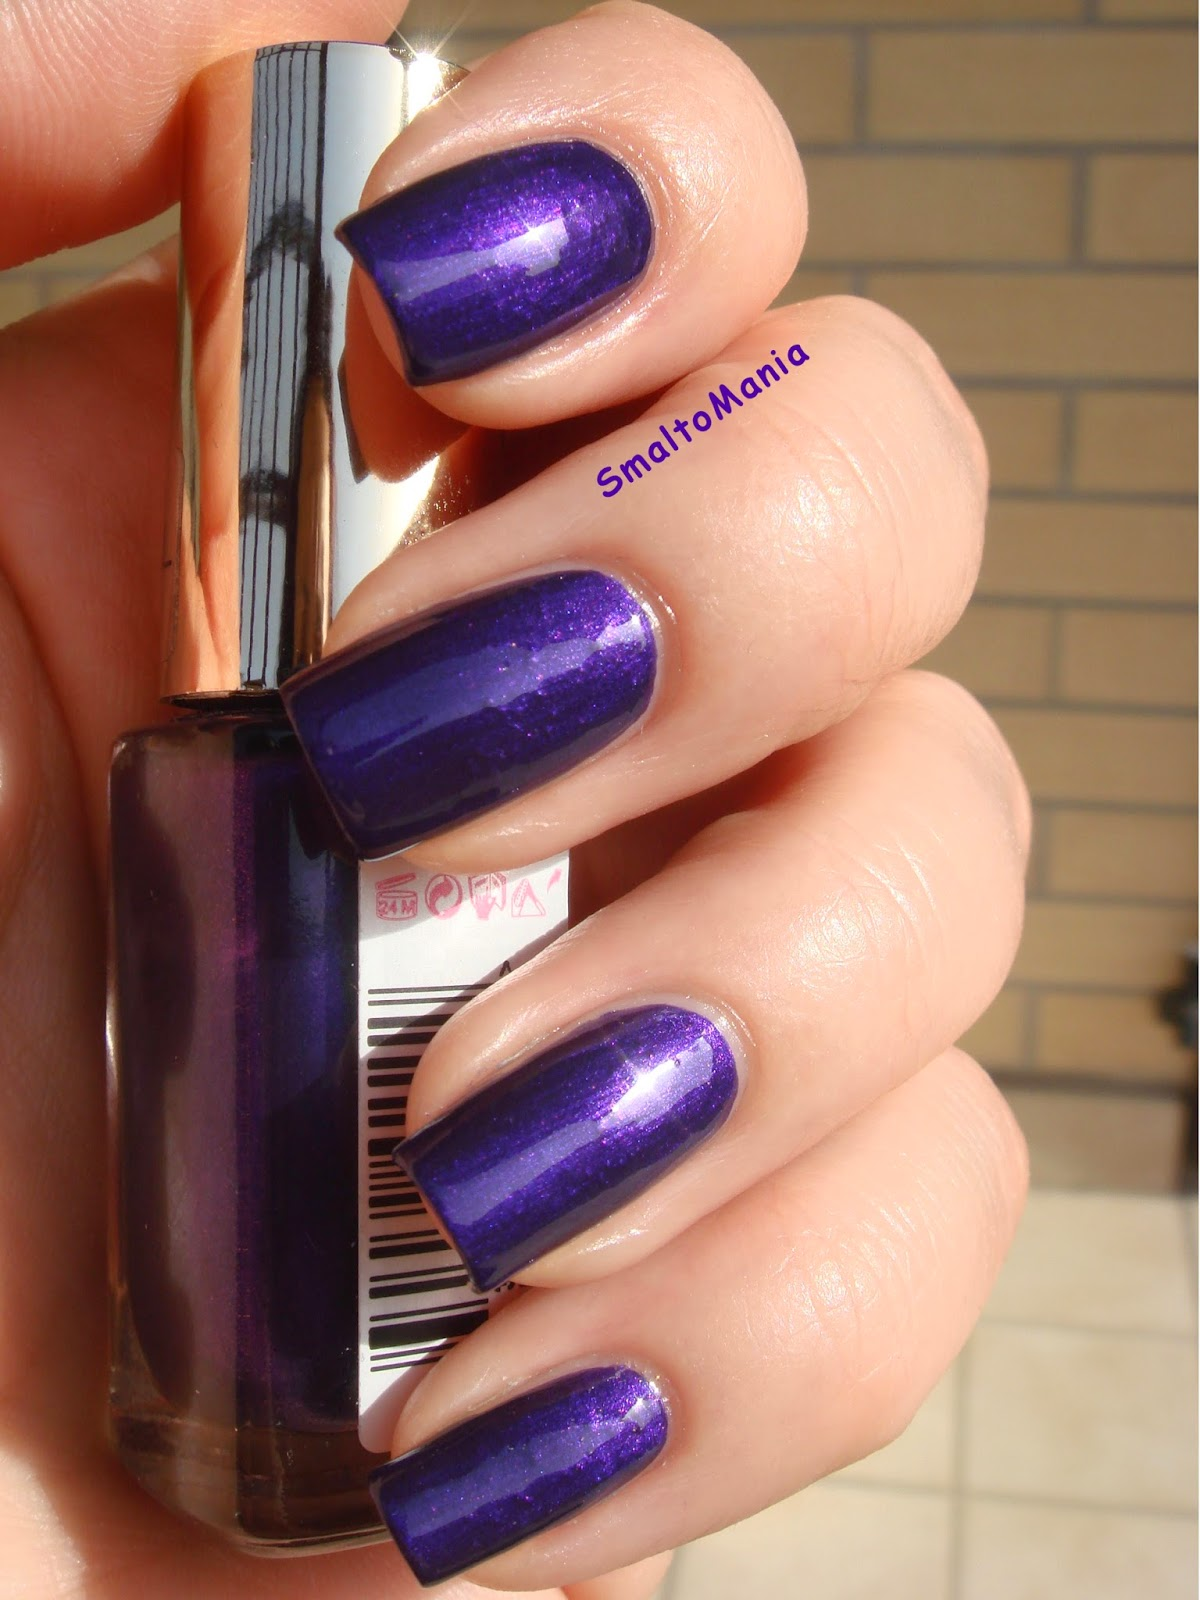 L'Oreal Color Riche n.609 Divine Indigo